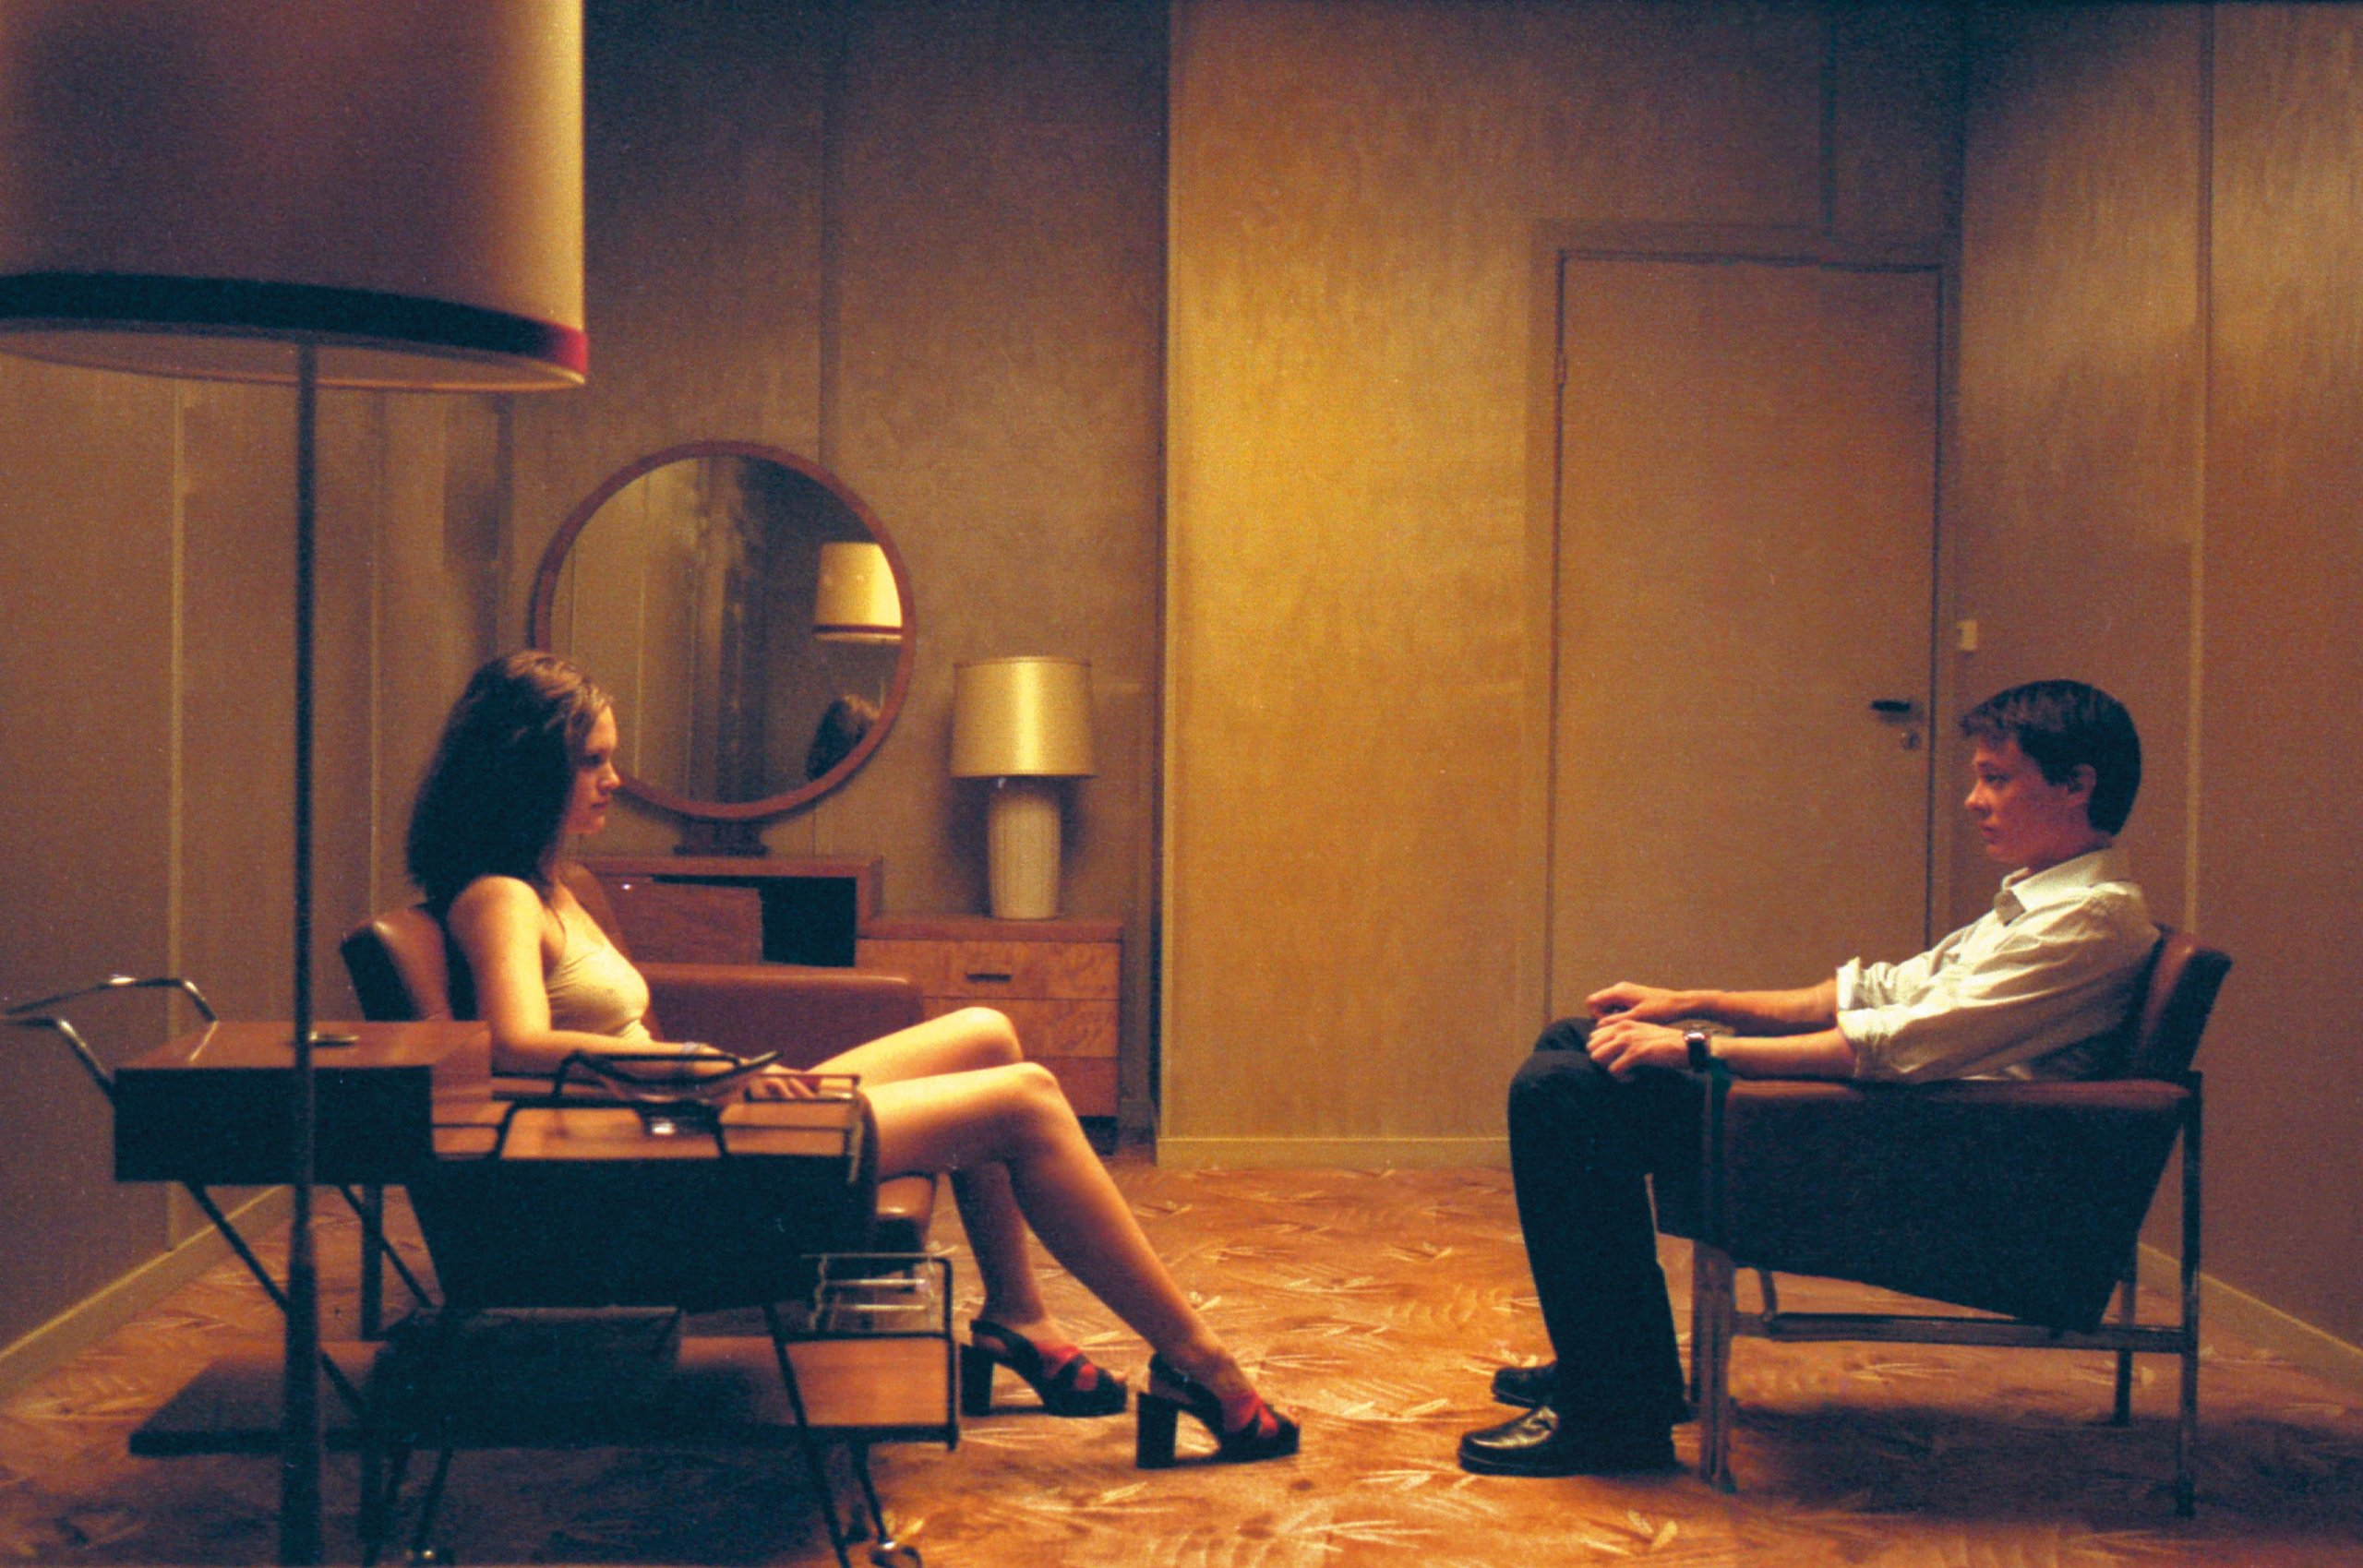 Kristoffer Joner sits down as Julia Schacht recounts the story of her assault in Next Door (2005)